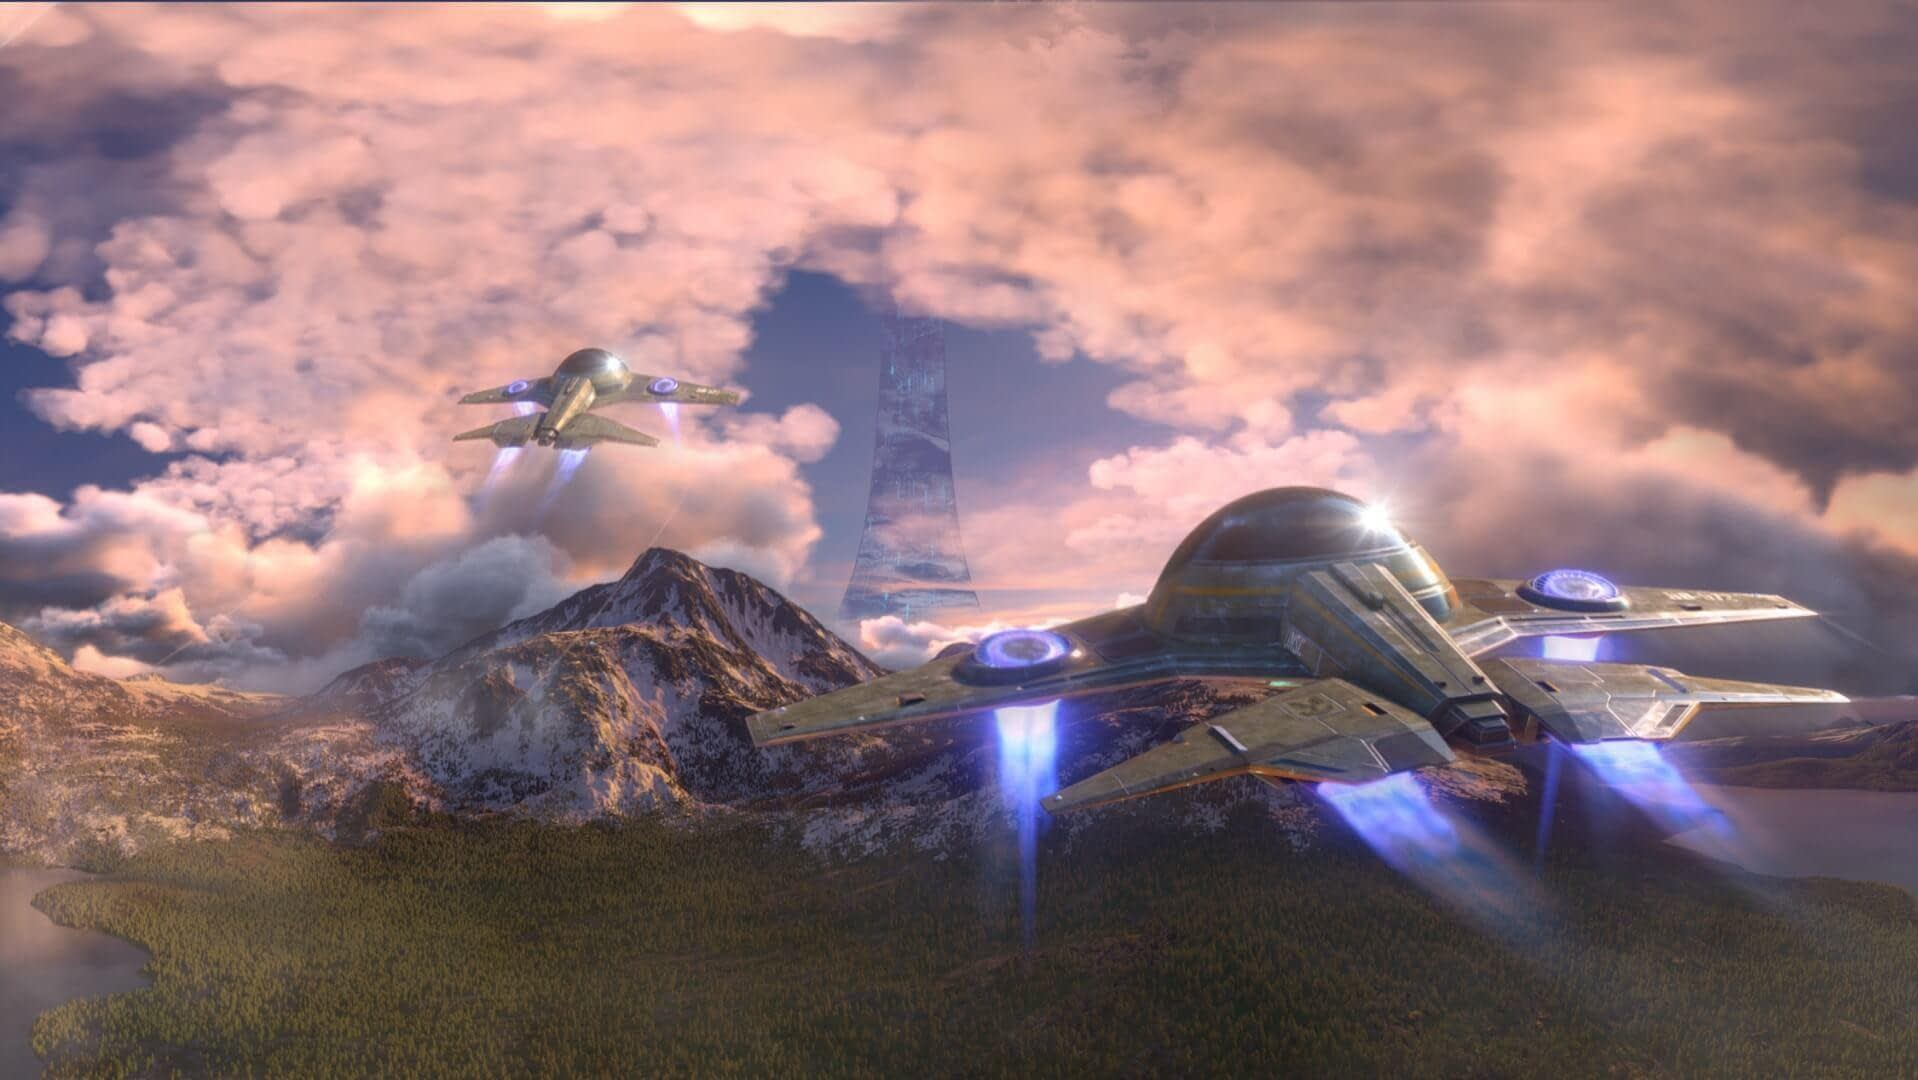 Halo: Outpost Discovery 3D Media Production